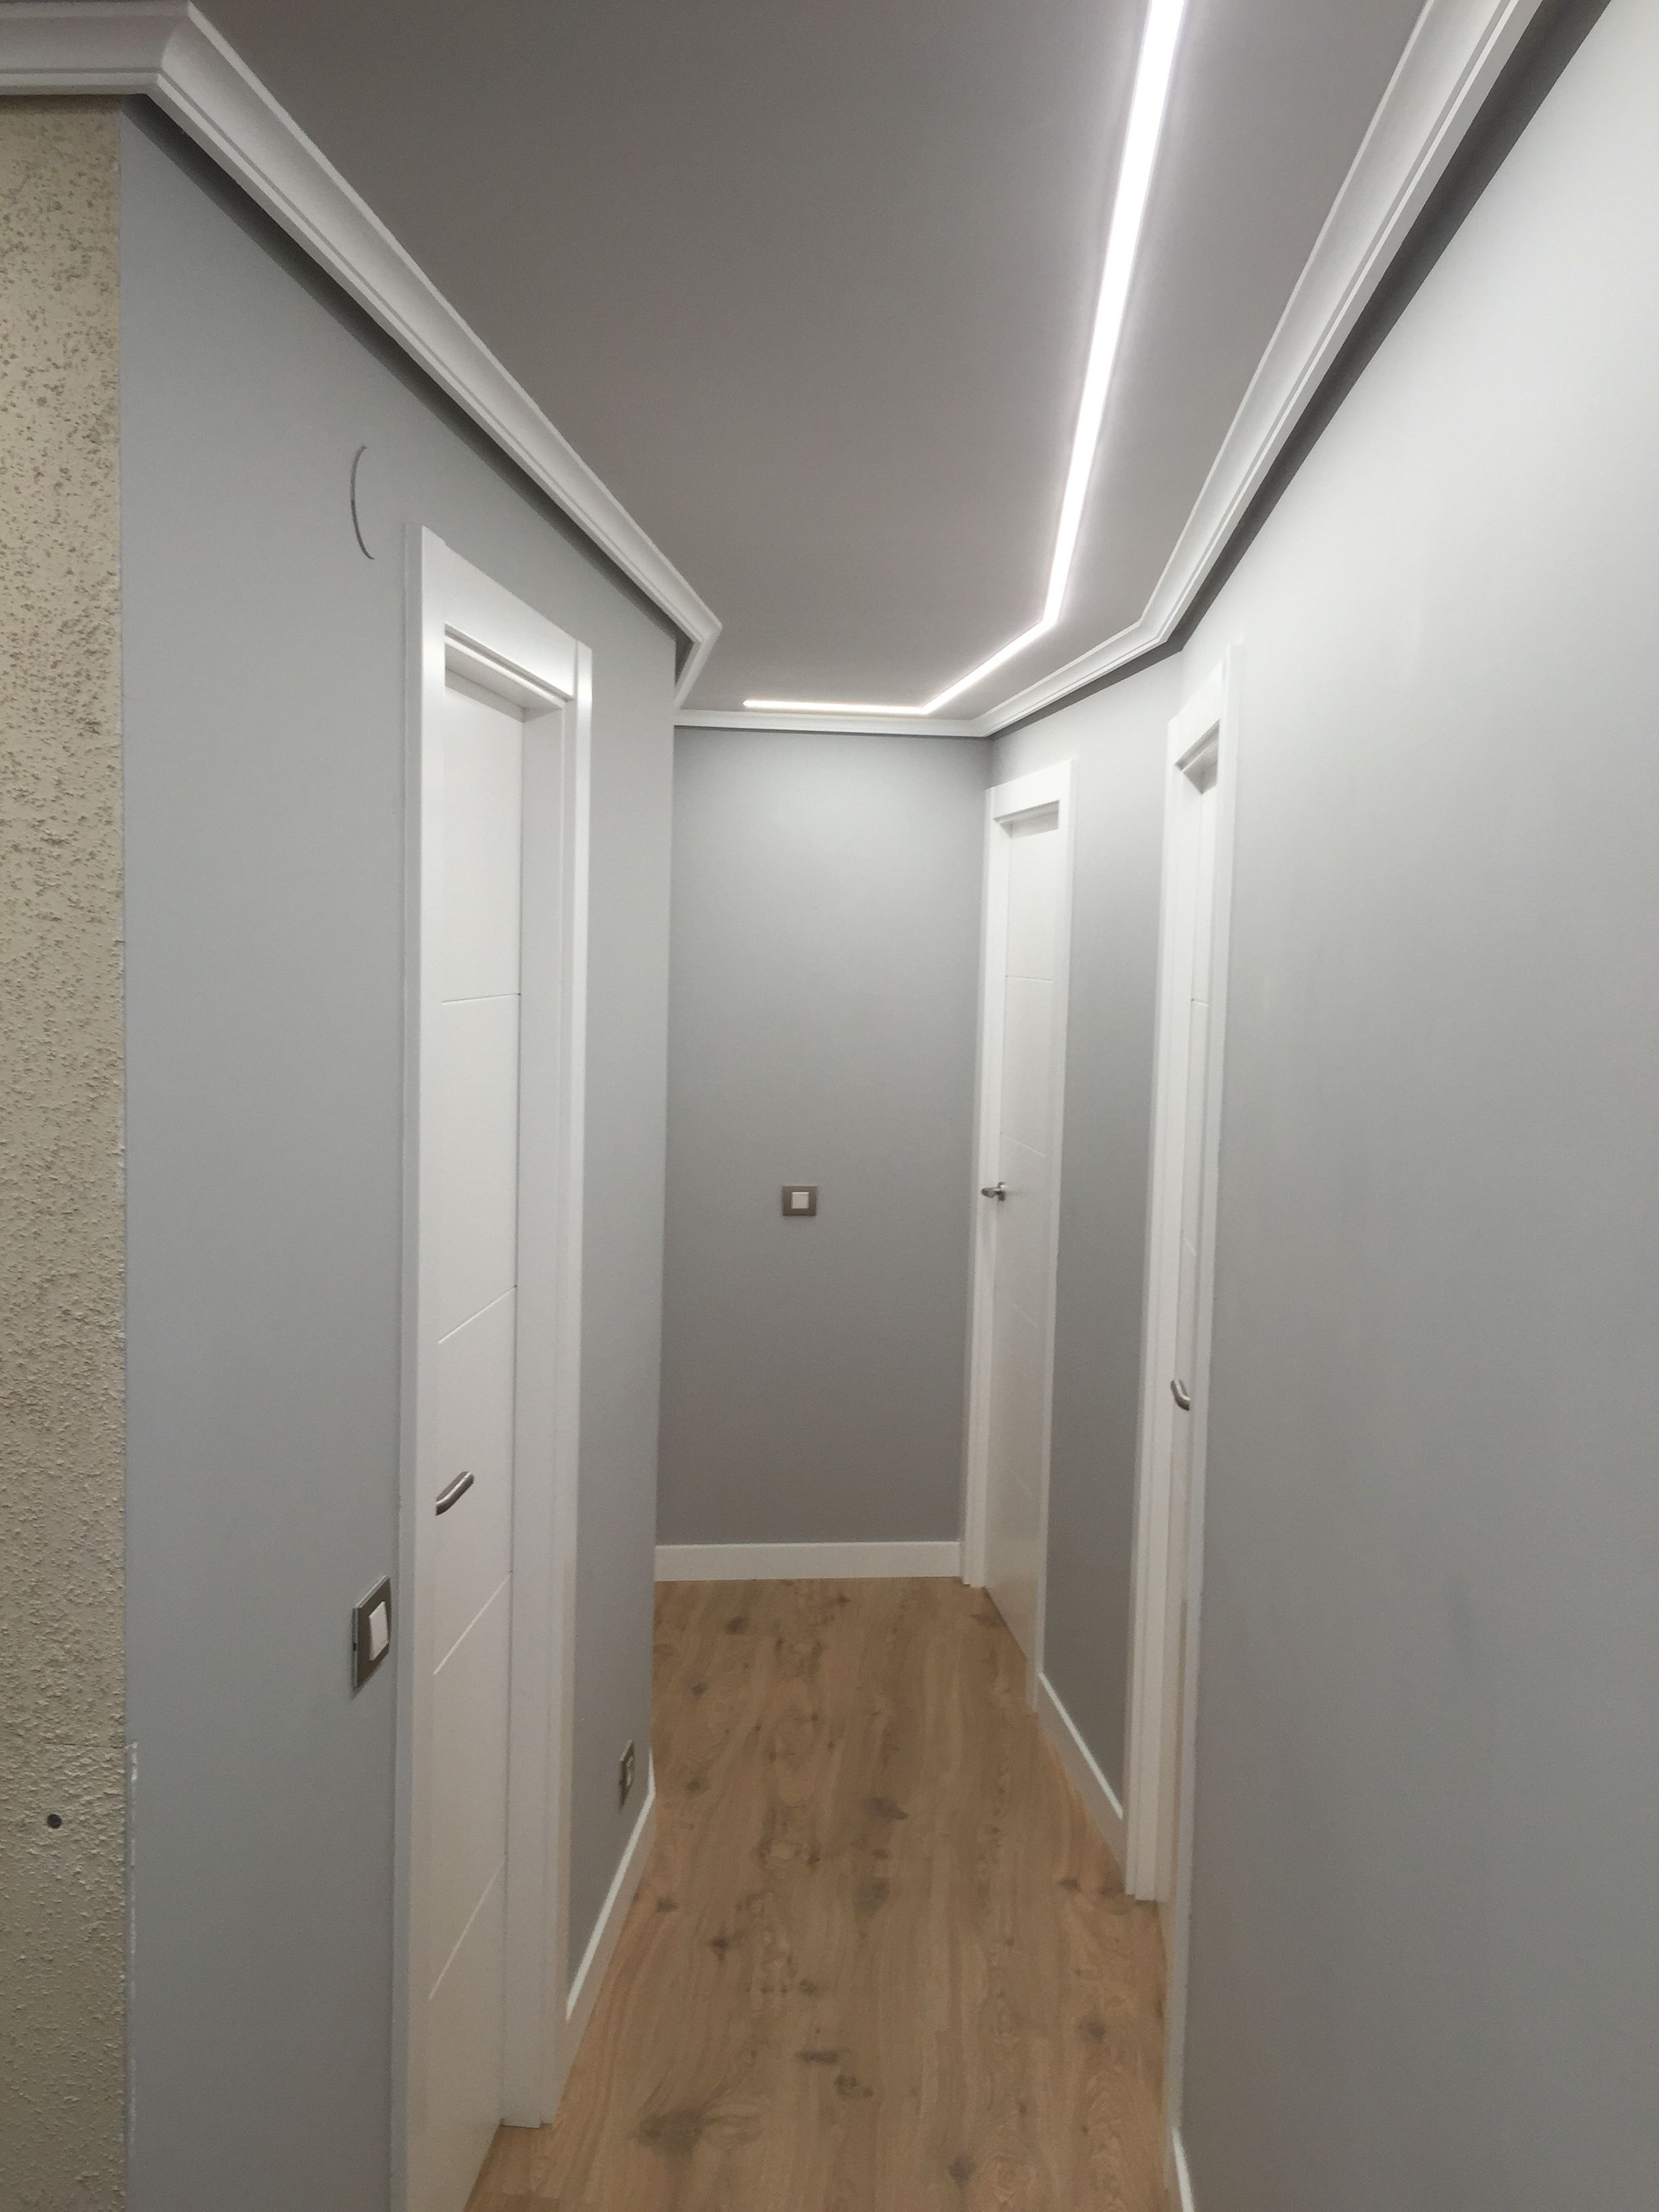 Luces Downlight Led Pasillo Iluminado Con Tiras De Leds Empotradas En El Techo